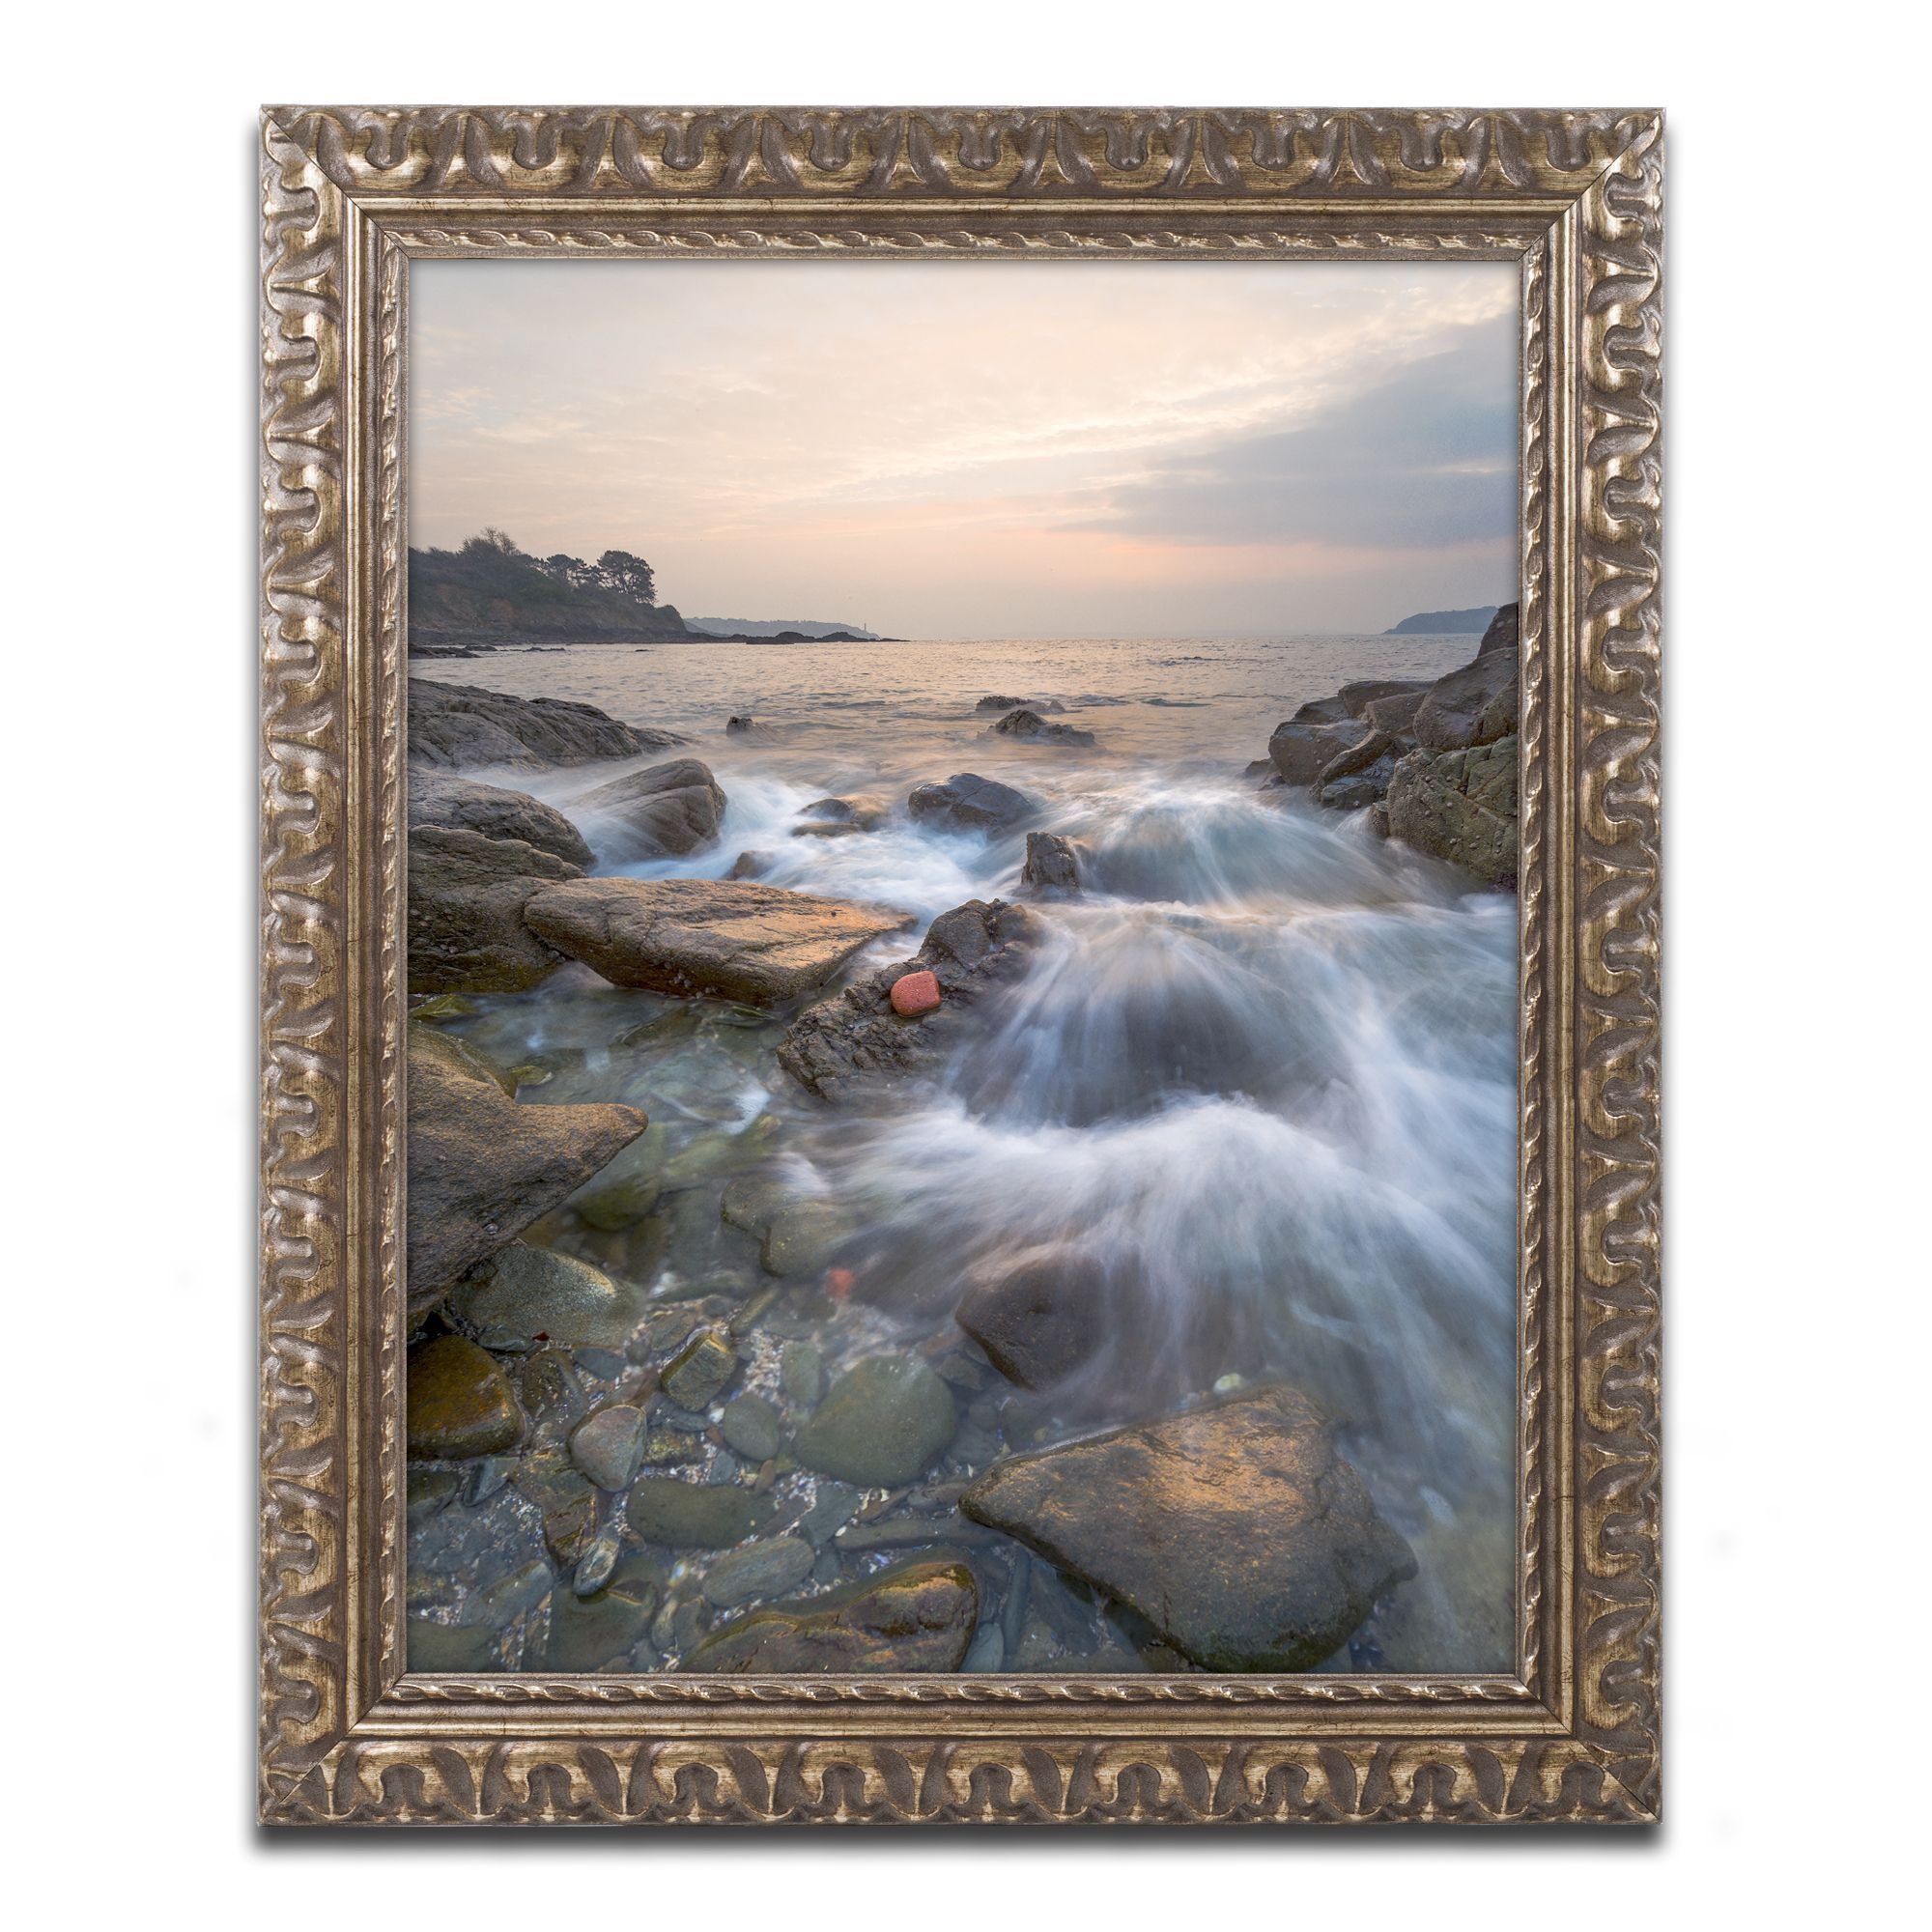 Mathieu Rivrin 'Story of a Wave' Ornate Framed Art